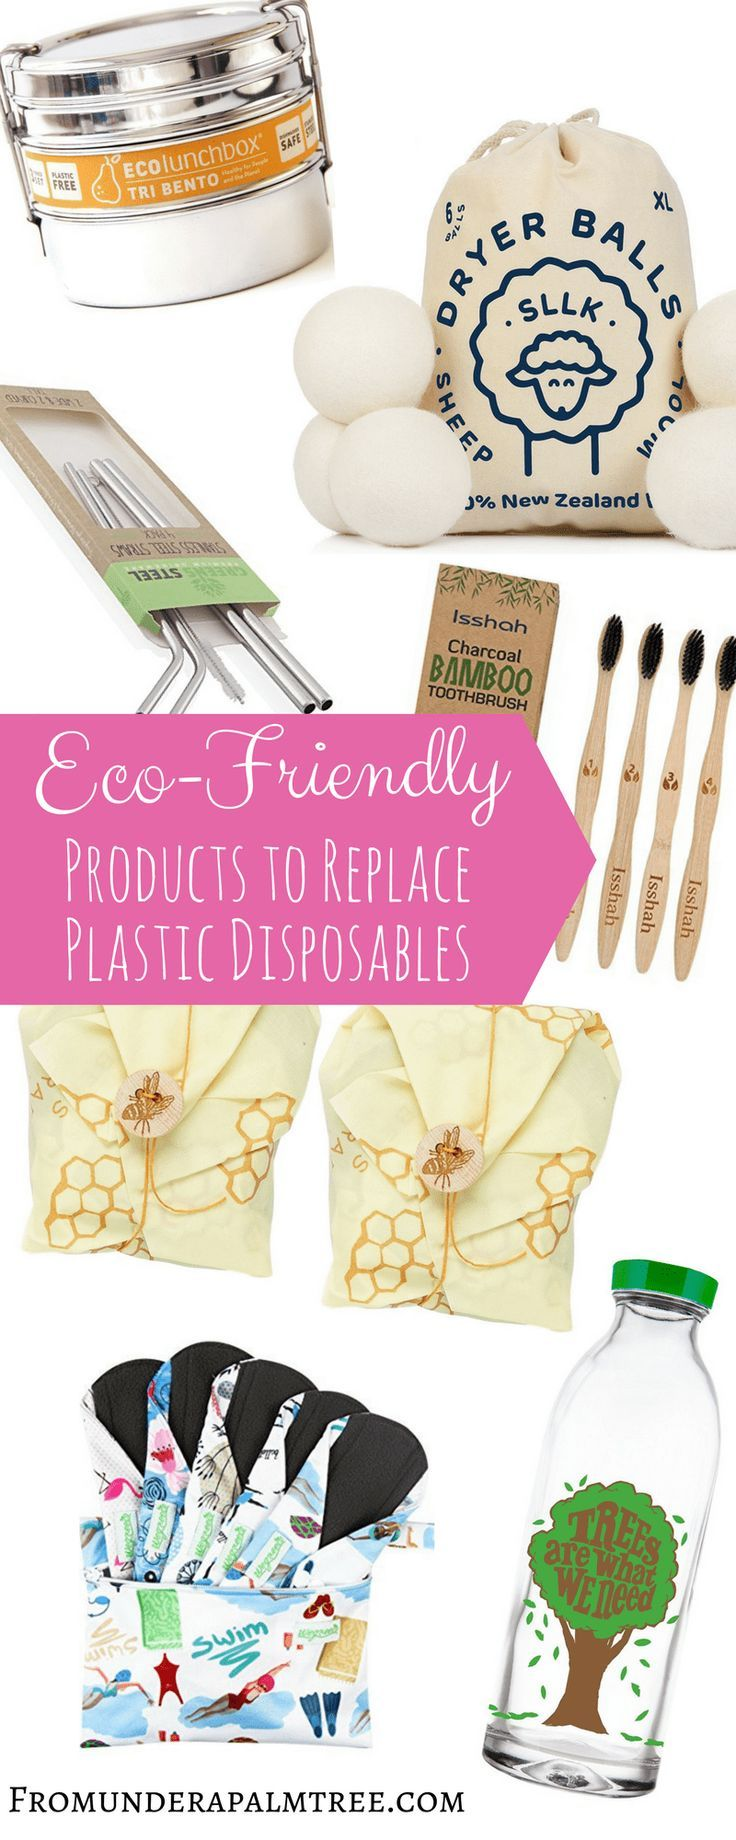 7 Eco-Friendly Products to Replace Plastic Disposables | Disposable Plastic Alternatives | Eco-friendly | Go Green | Sustainable living | single-use plastic alternatives | Earth Day | Reusable | recycle | biodegradable | green living | sustainable | reusable pads | menstrual cups | reusable straws | eco-friendly straws | faucet face | dryer balls | ECOlunchbox | bees wrap | charcoal | toothbrush |